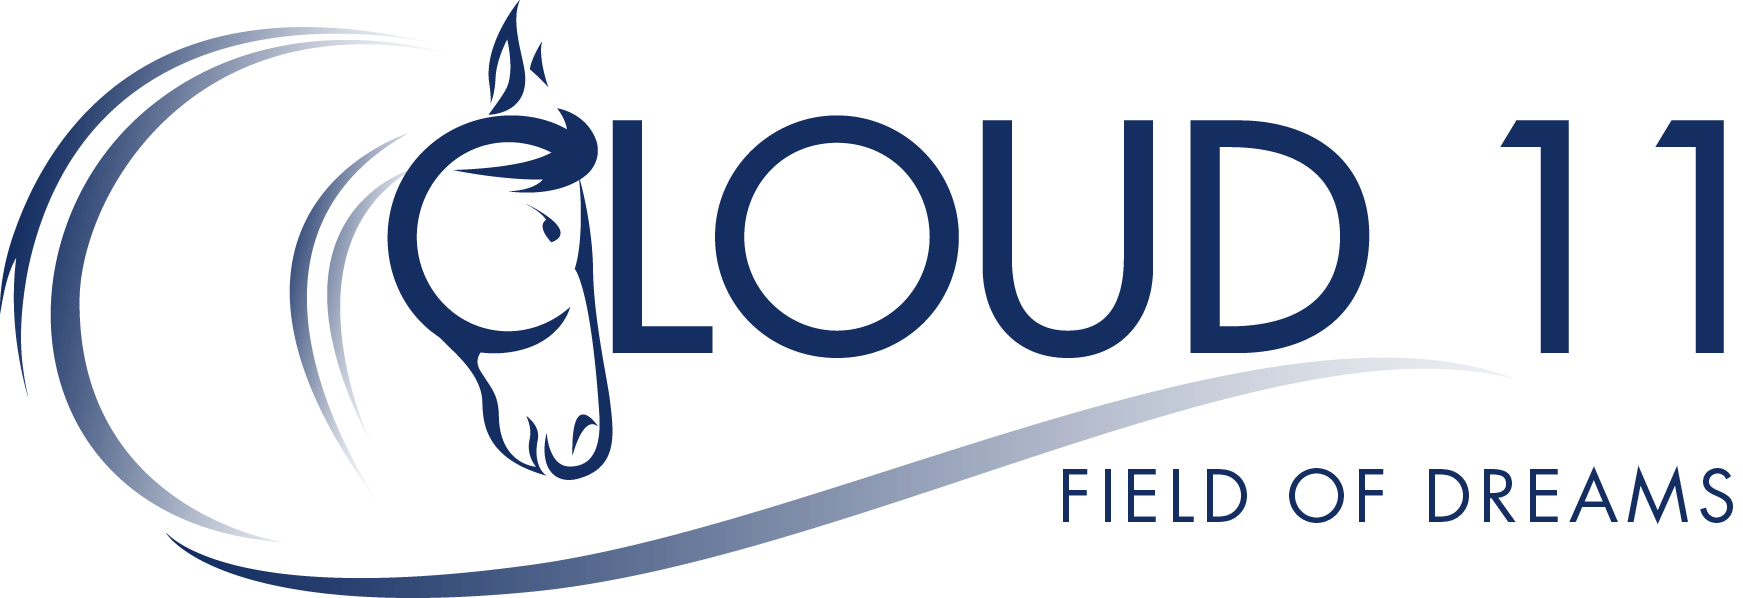 Cloud11 Logo